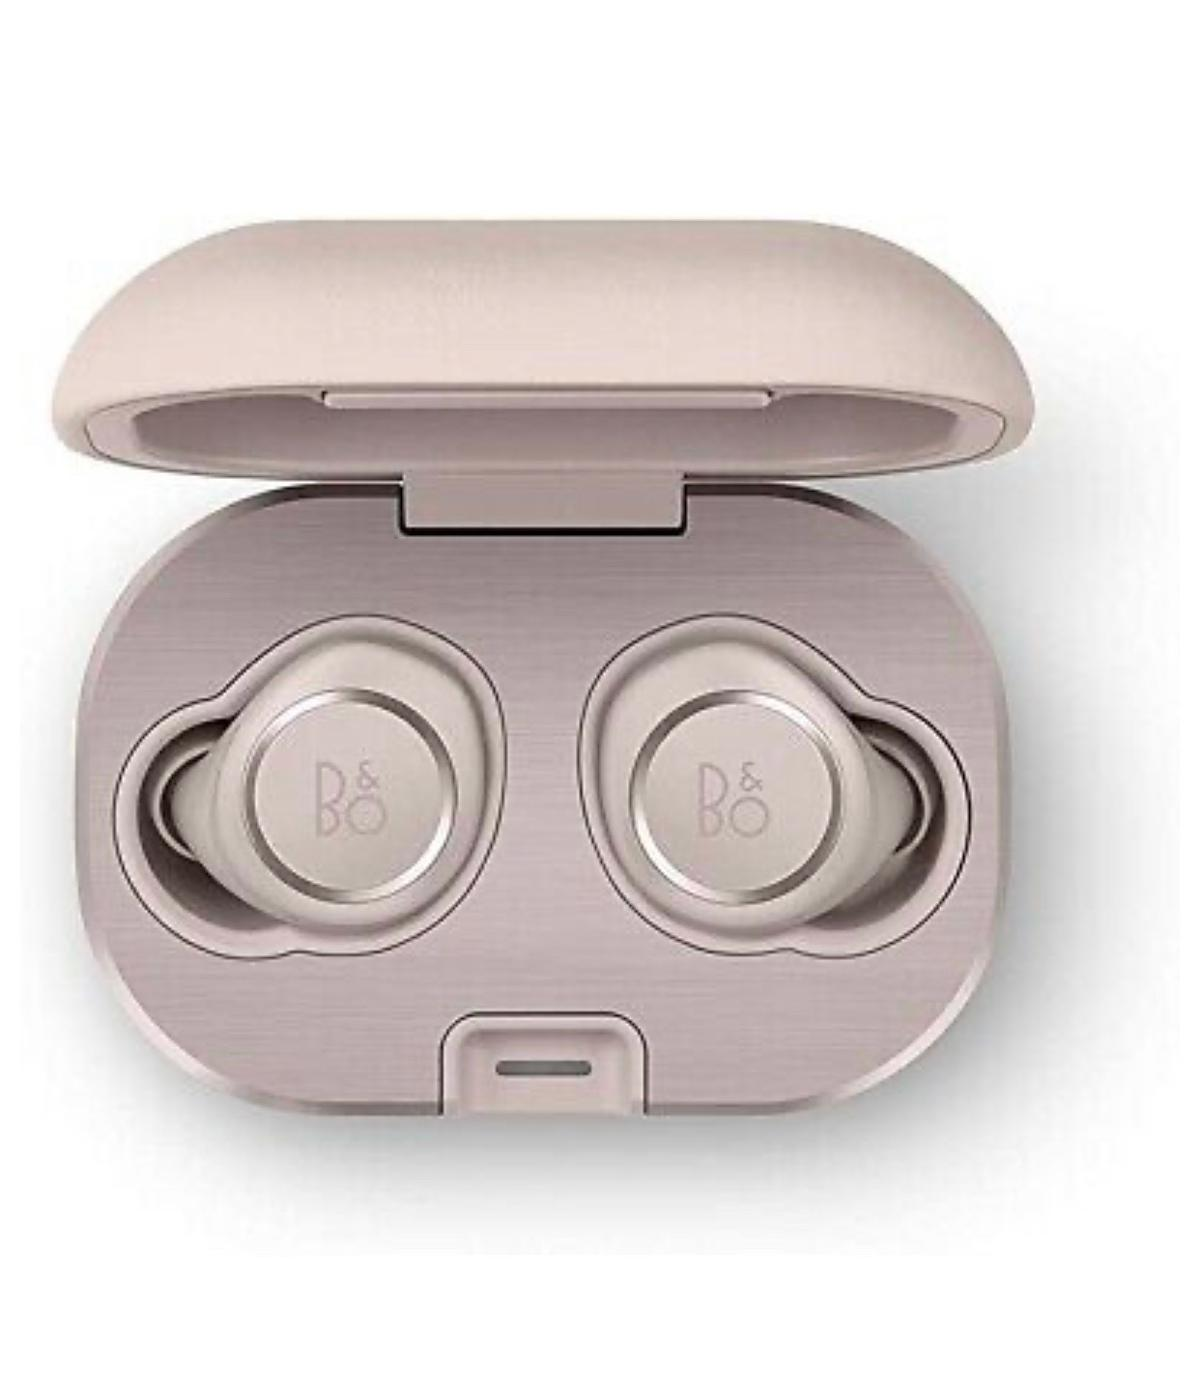 Bang & Olufsen Beoplay e8 2.0 Wireless Bluetooth Earbuds and charging case - Sandstone.  Band new in sealed box